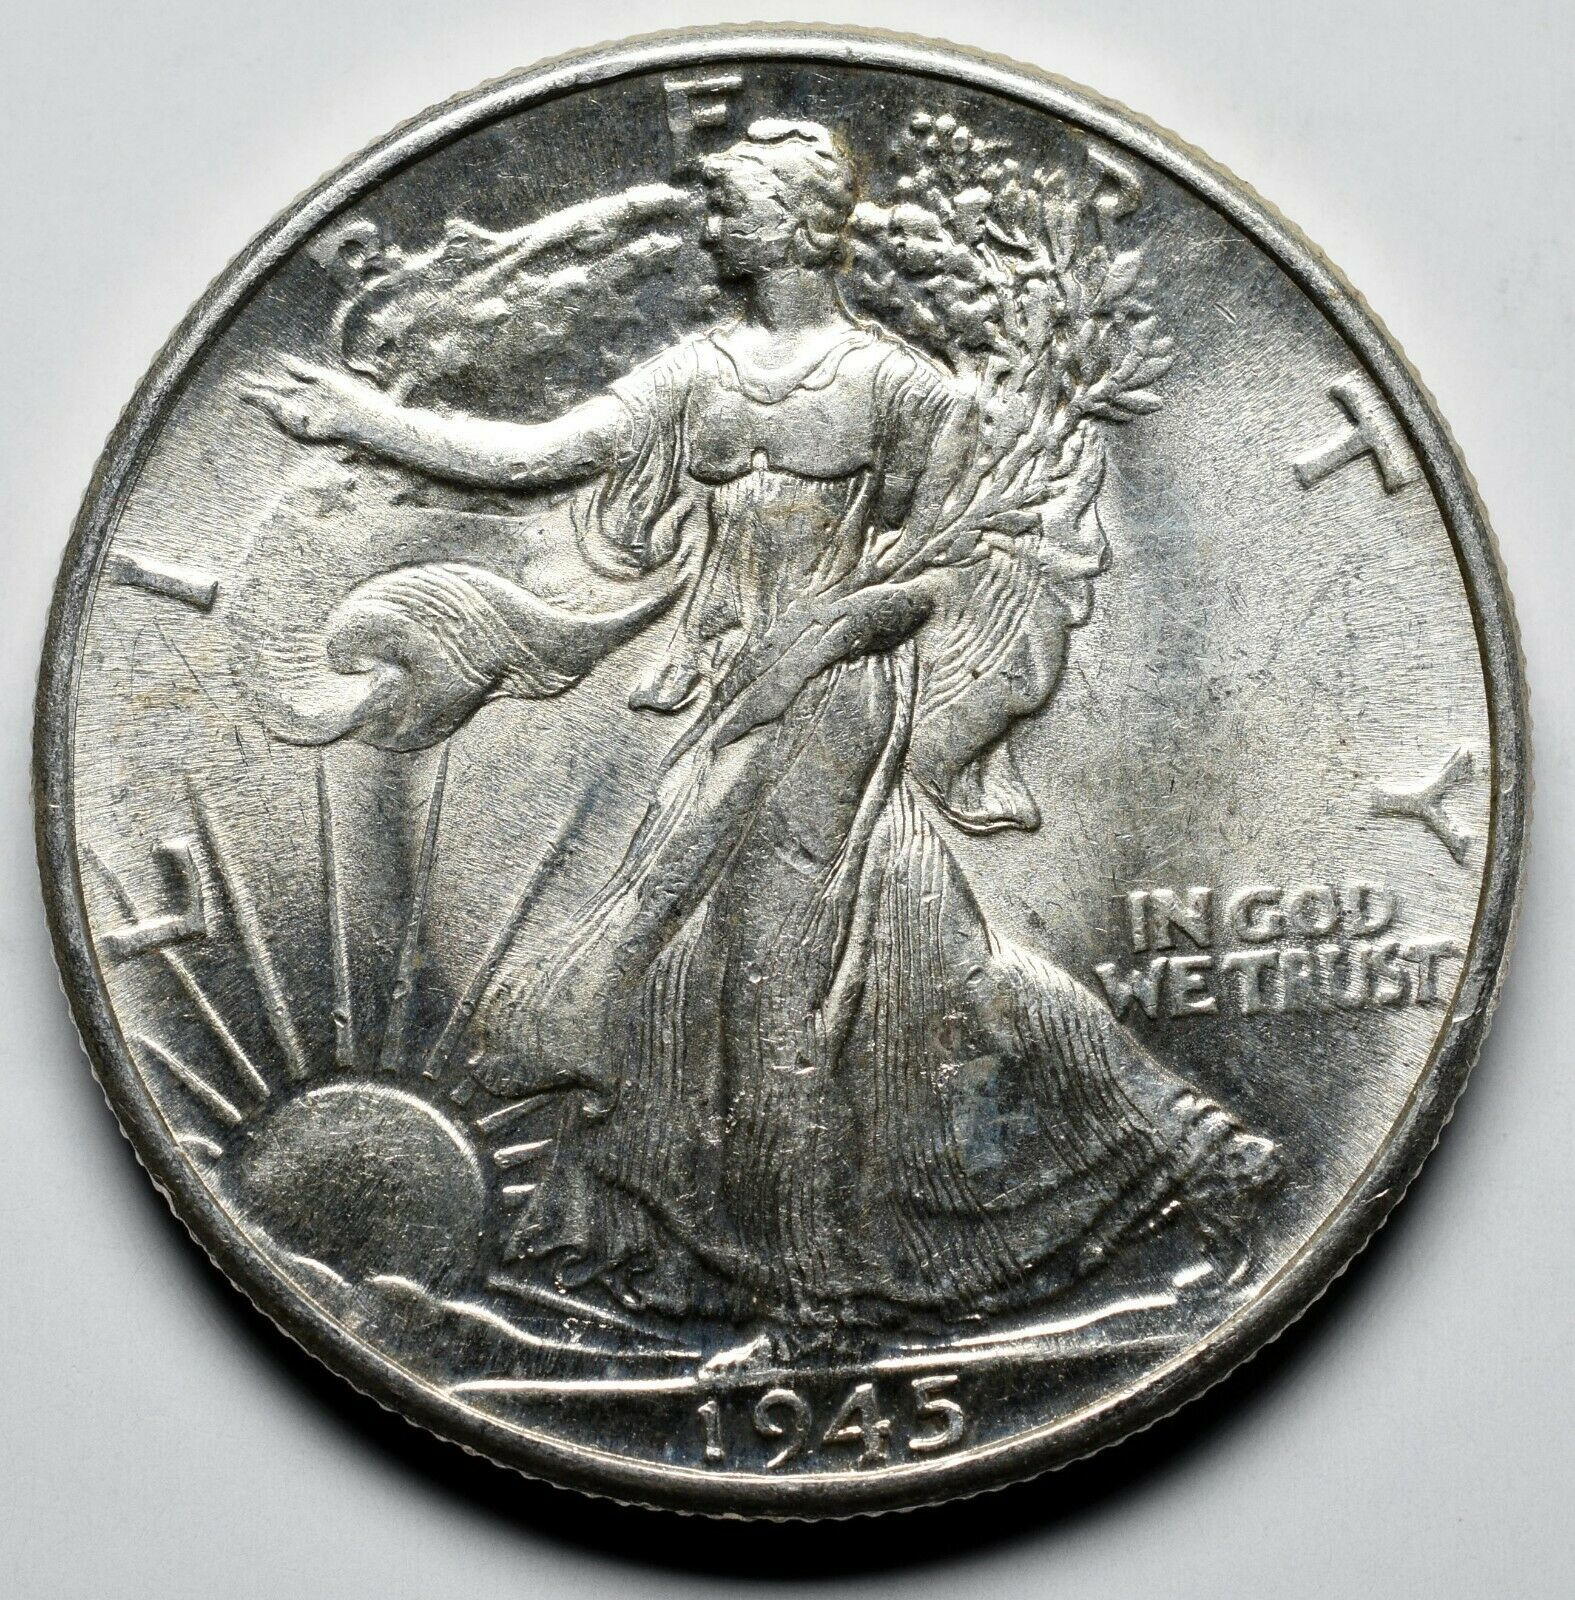 1945 Walking Liberty Half Dollar 90% Silver Coin Lot# A 216